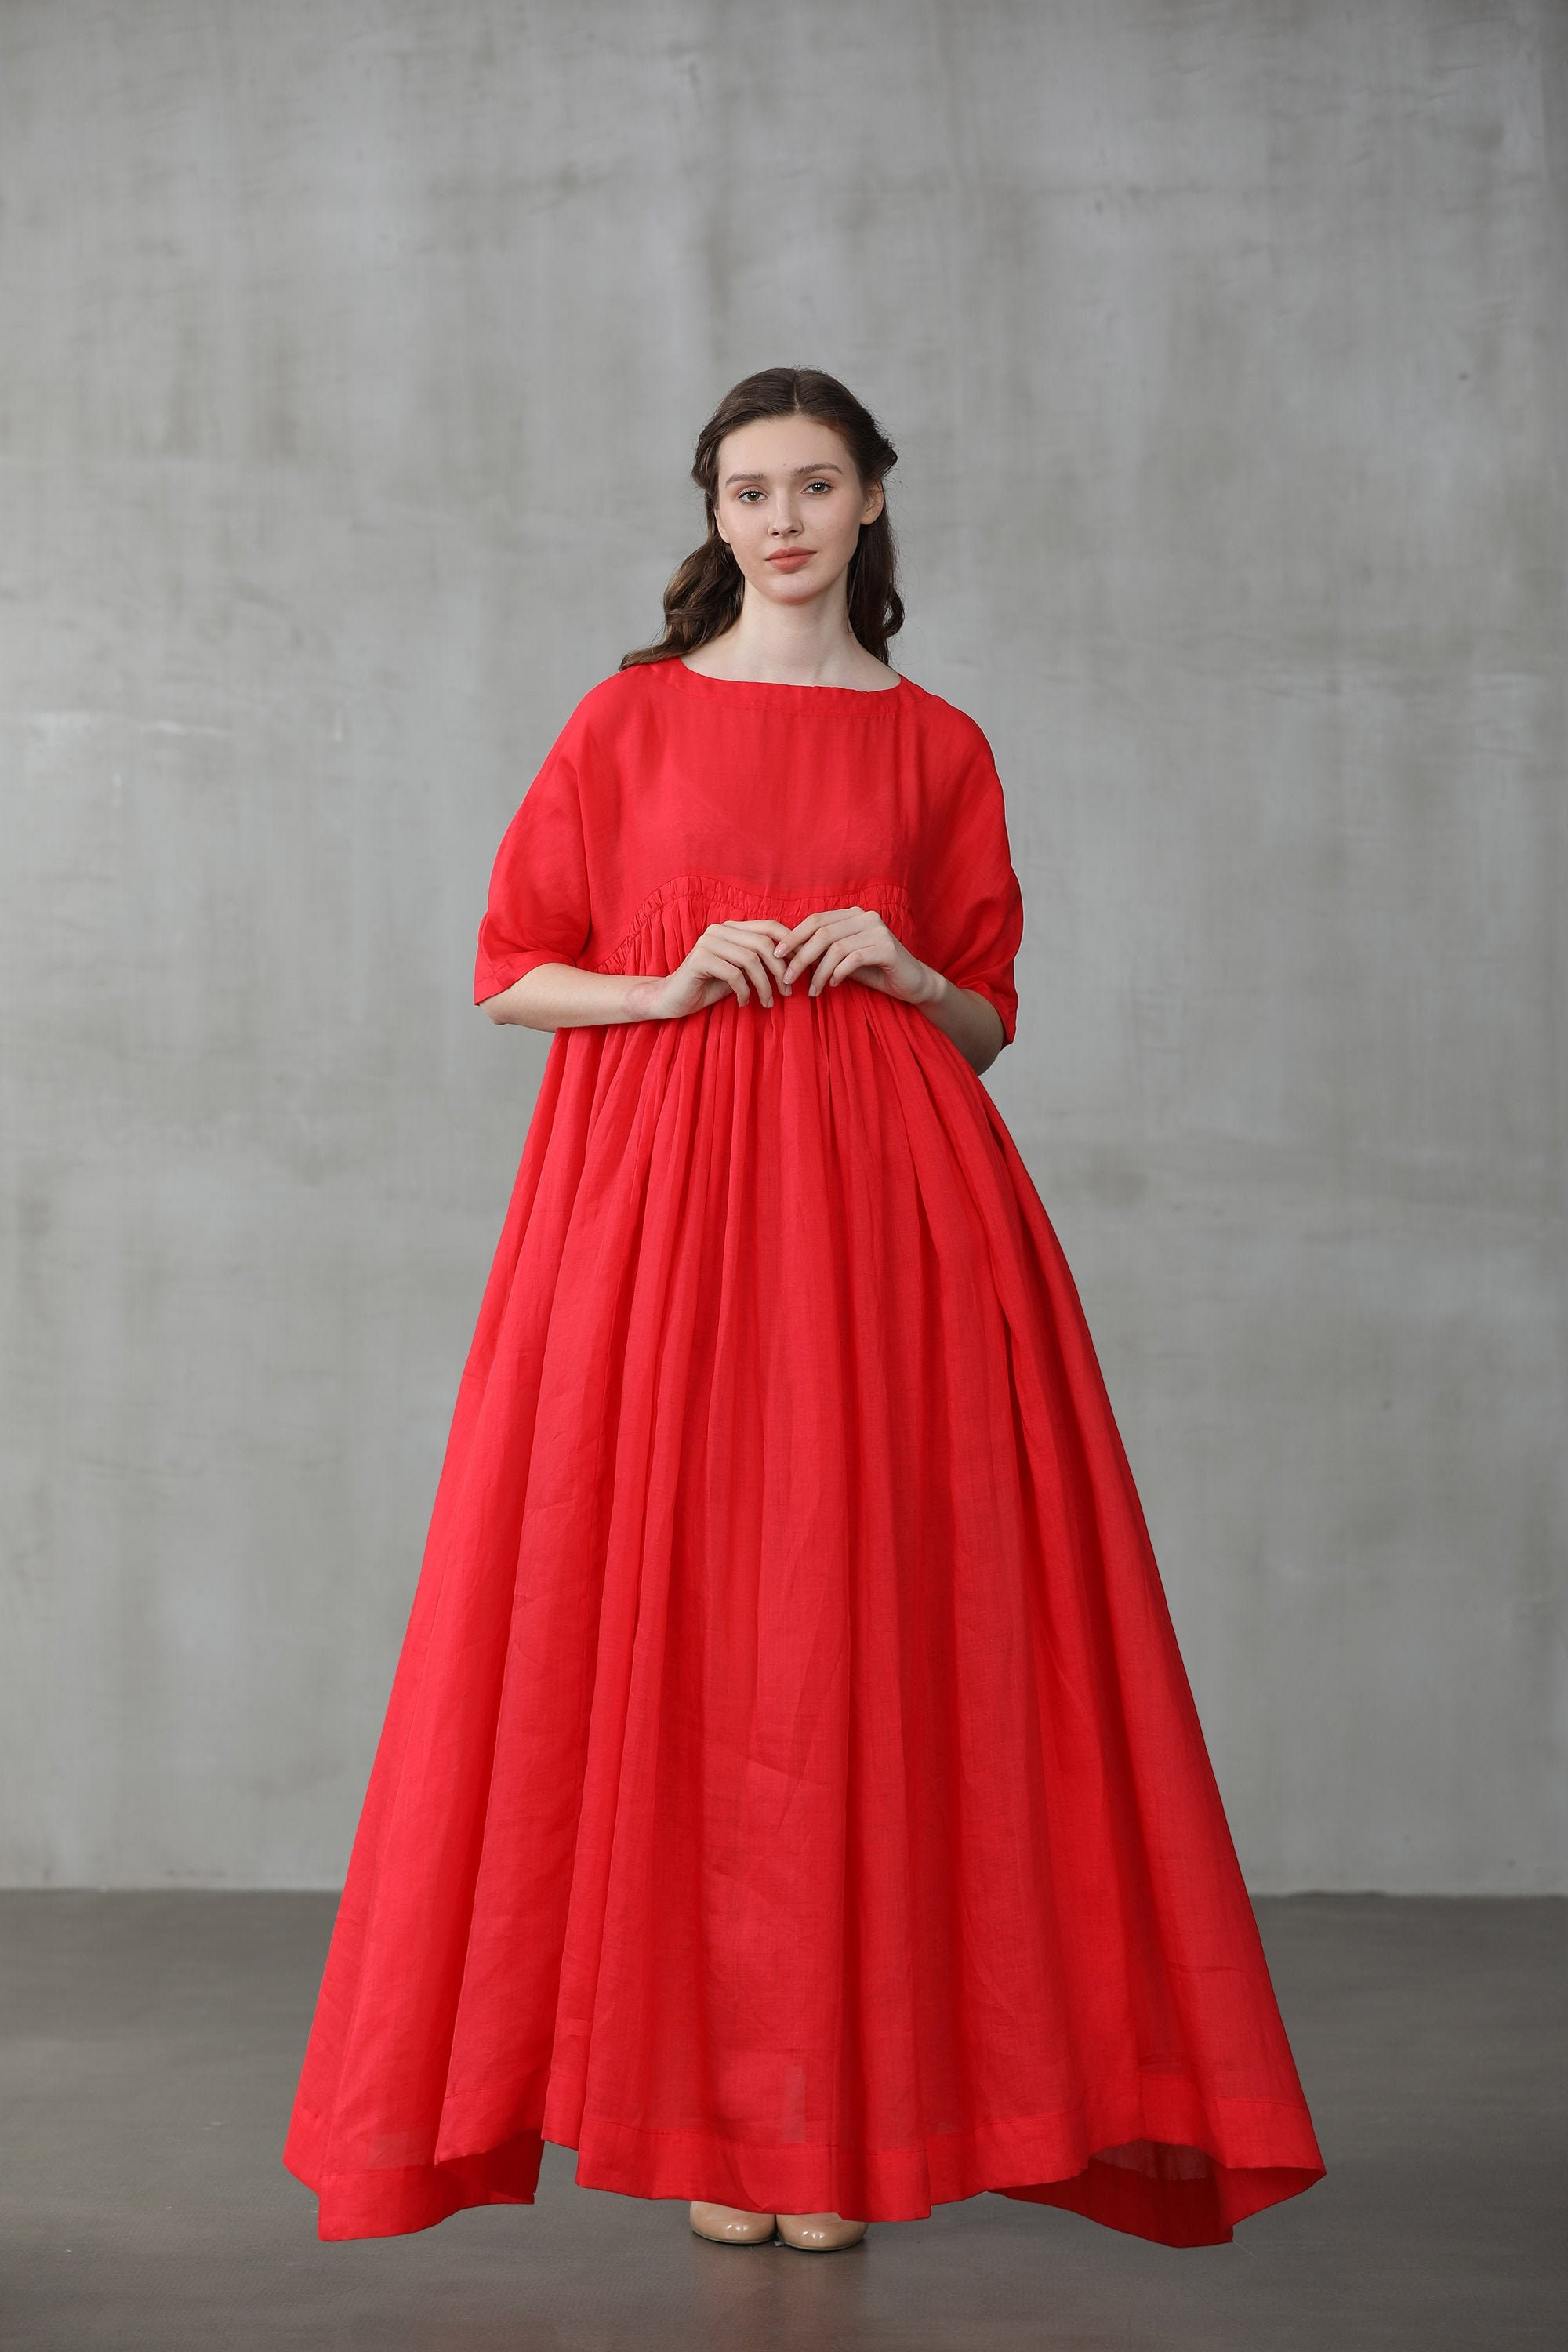 Linen Dress Red Dress Maxi Dress Maxi Linen Dress Ruffle Dress Princess Dress Oversized Dress Wedding Dress Linennaive